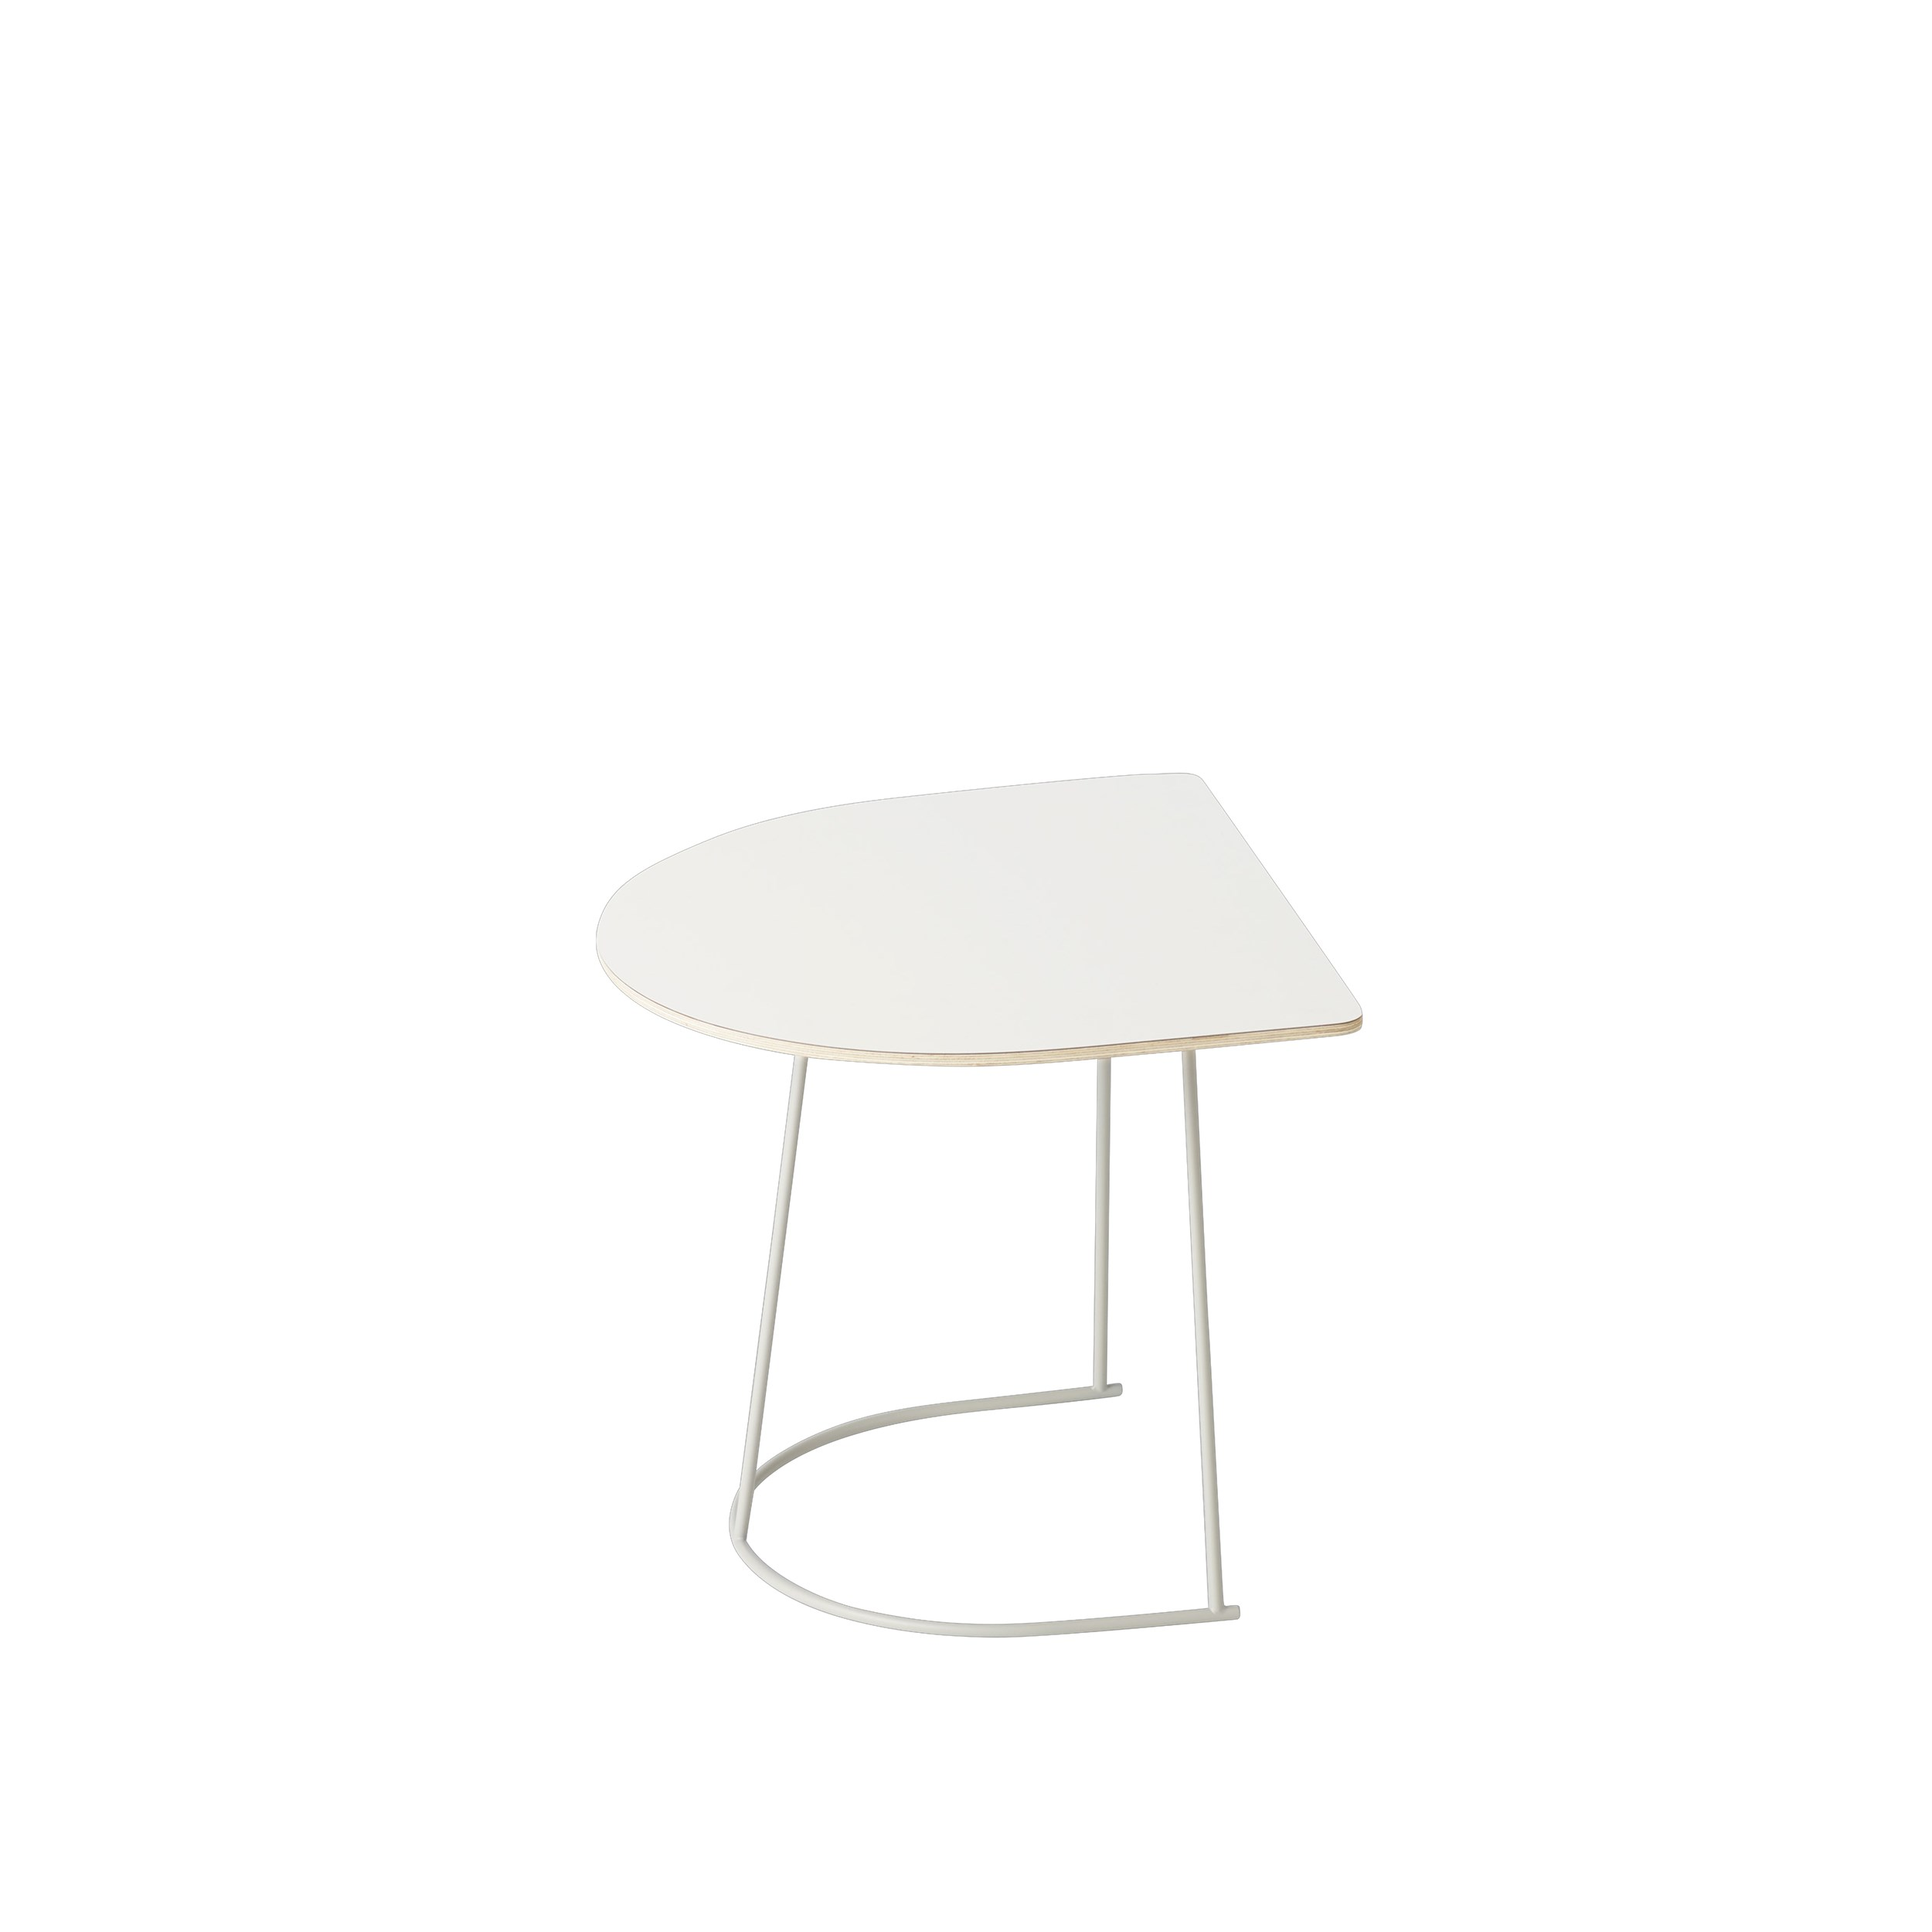 Muuto Airy Coffee Table Half Size Off-White